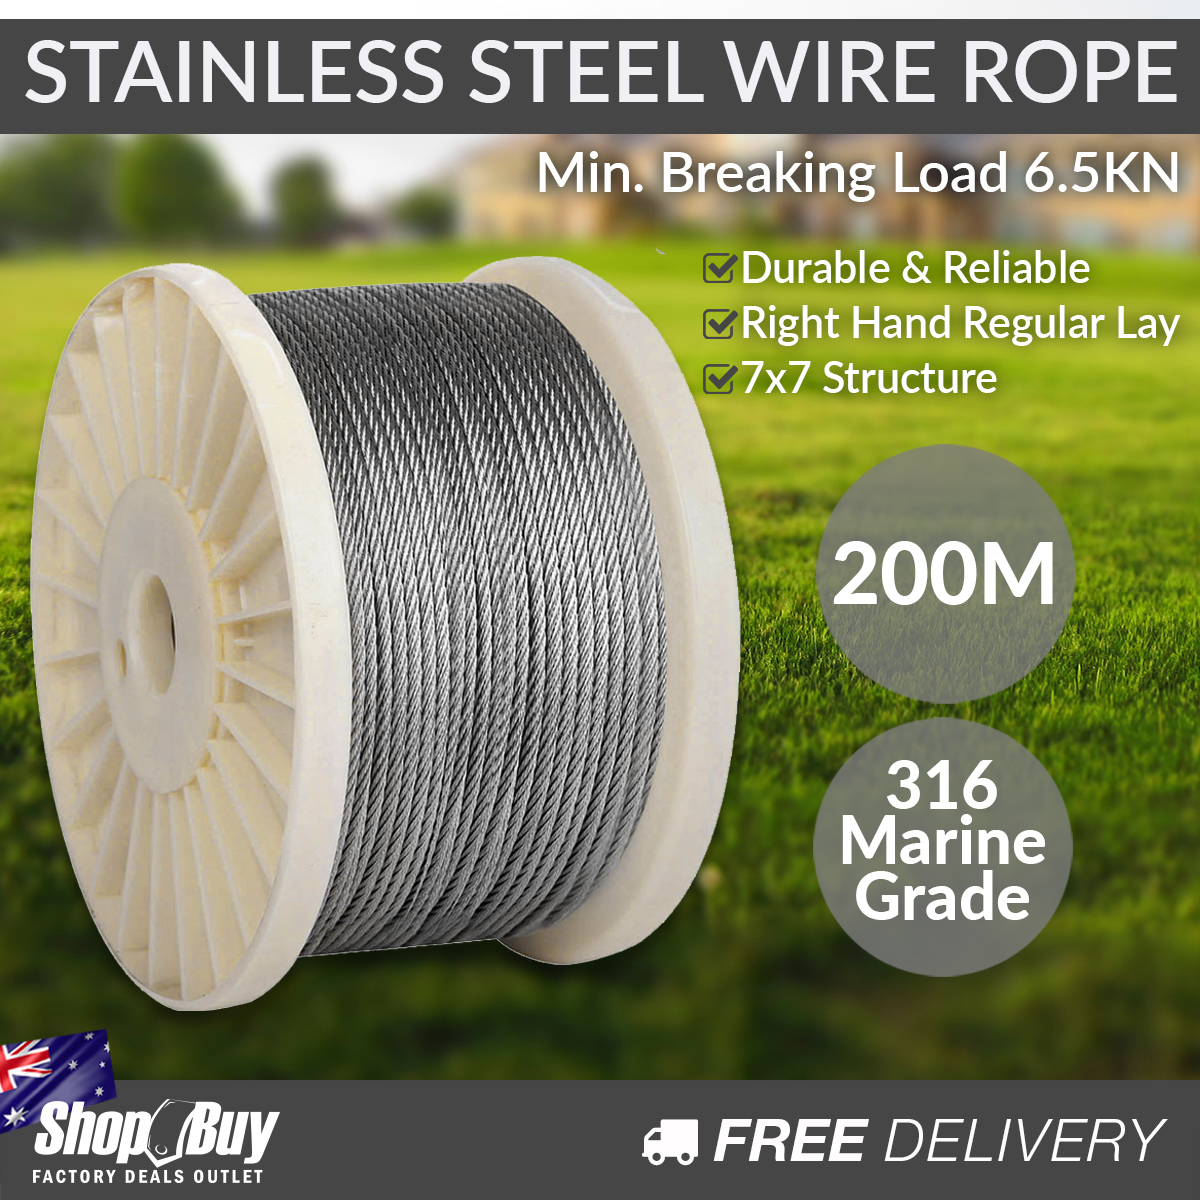 316 Marine Stainless Steel Wire Rope 7x7 Balustrade Decking Fence ...